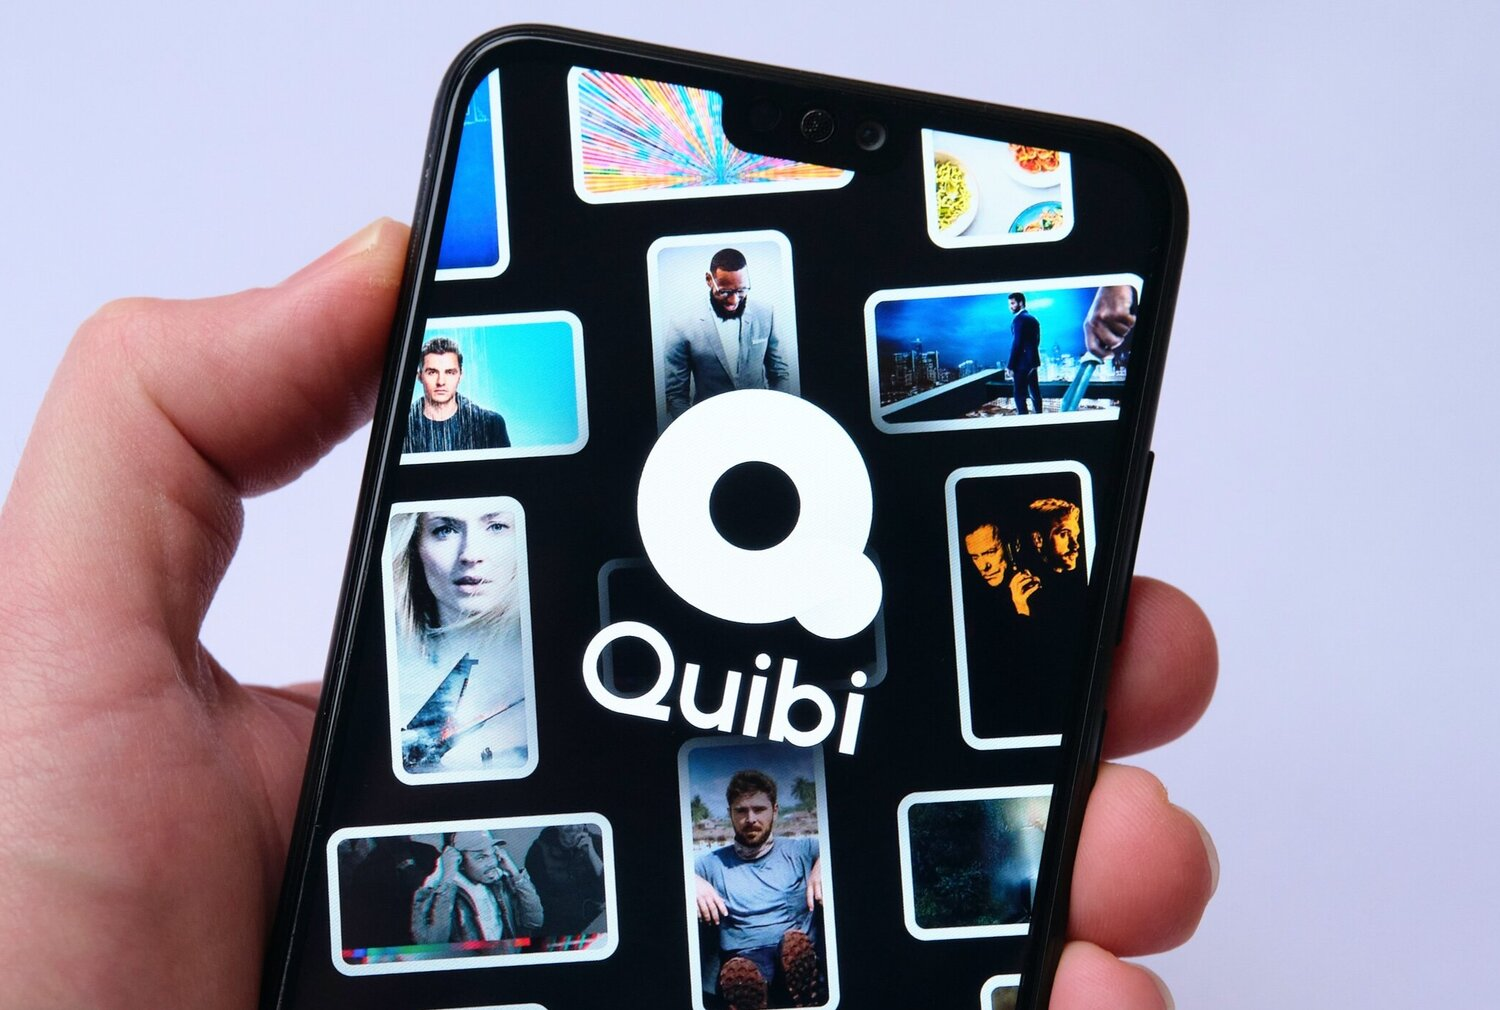 Quibi - an American short-form streaming platform